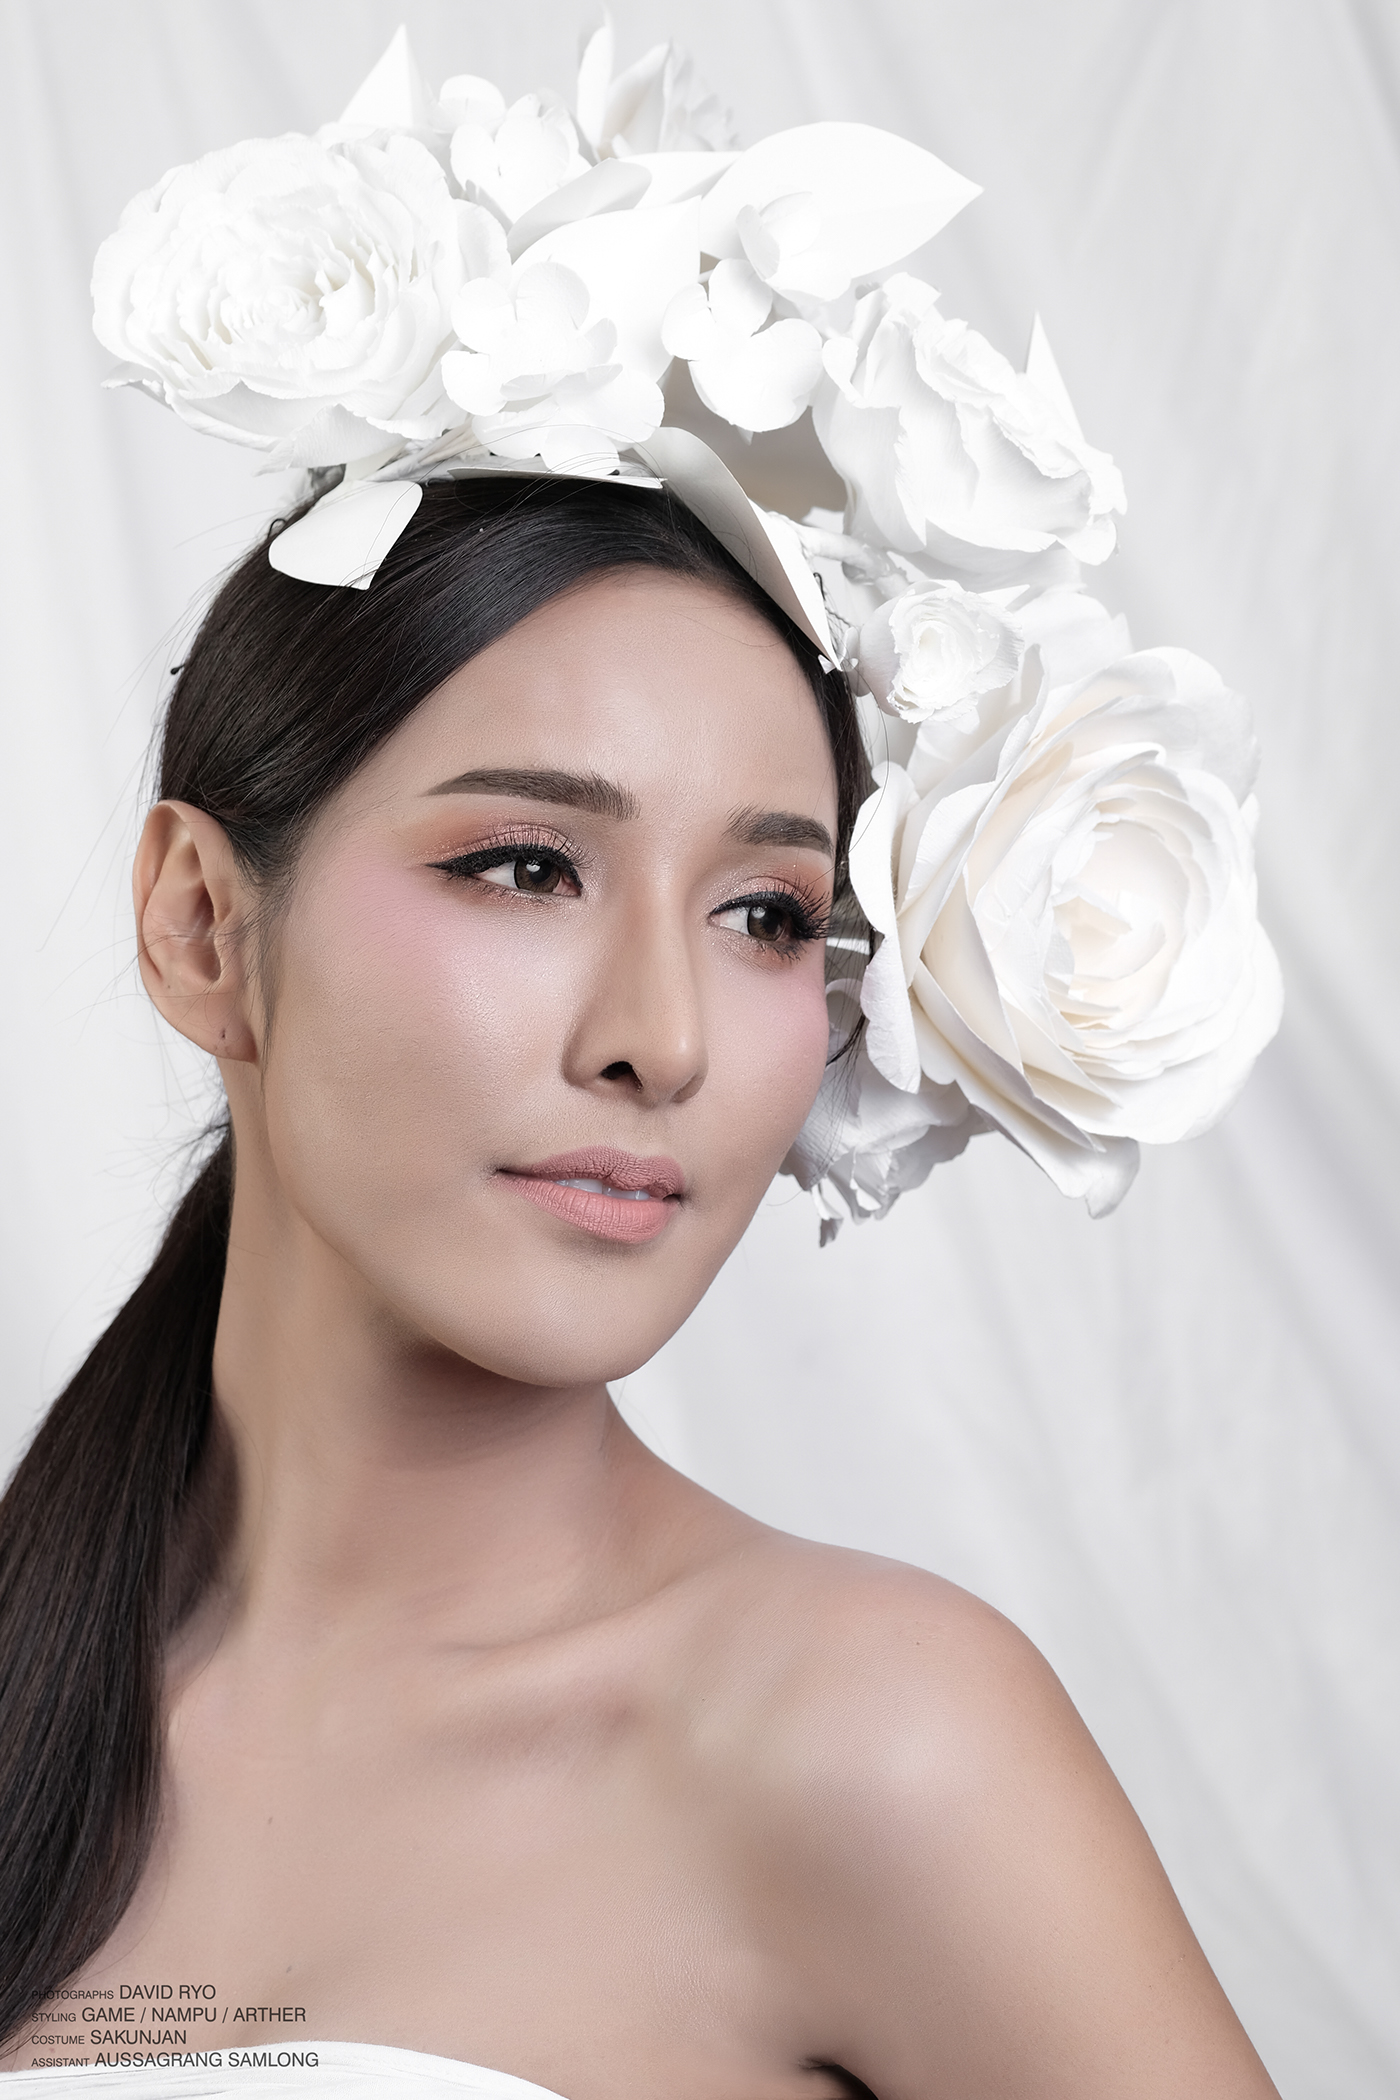 Miss Healthy Thailand 2017 (Transgender beauty pageant) on Behance